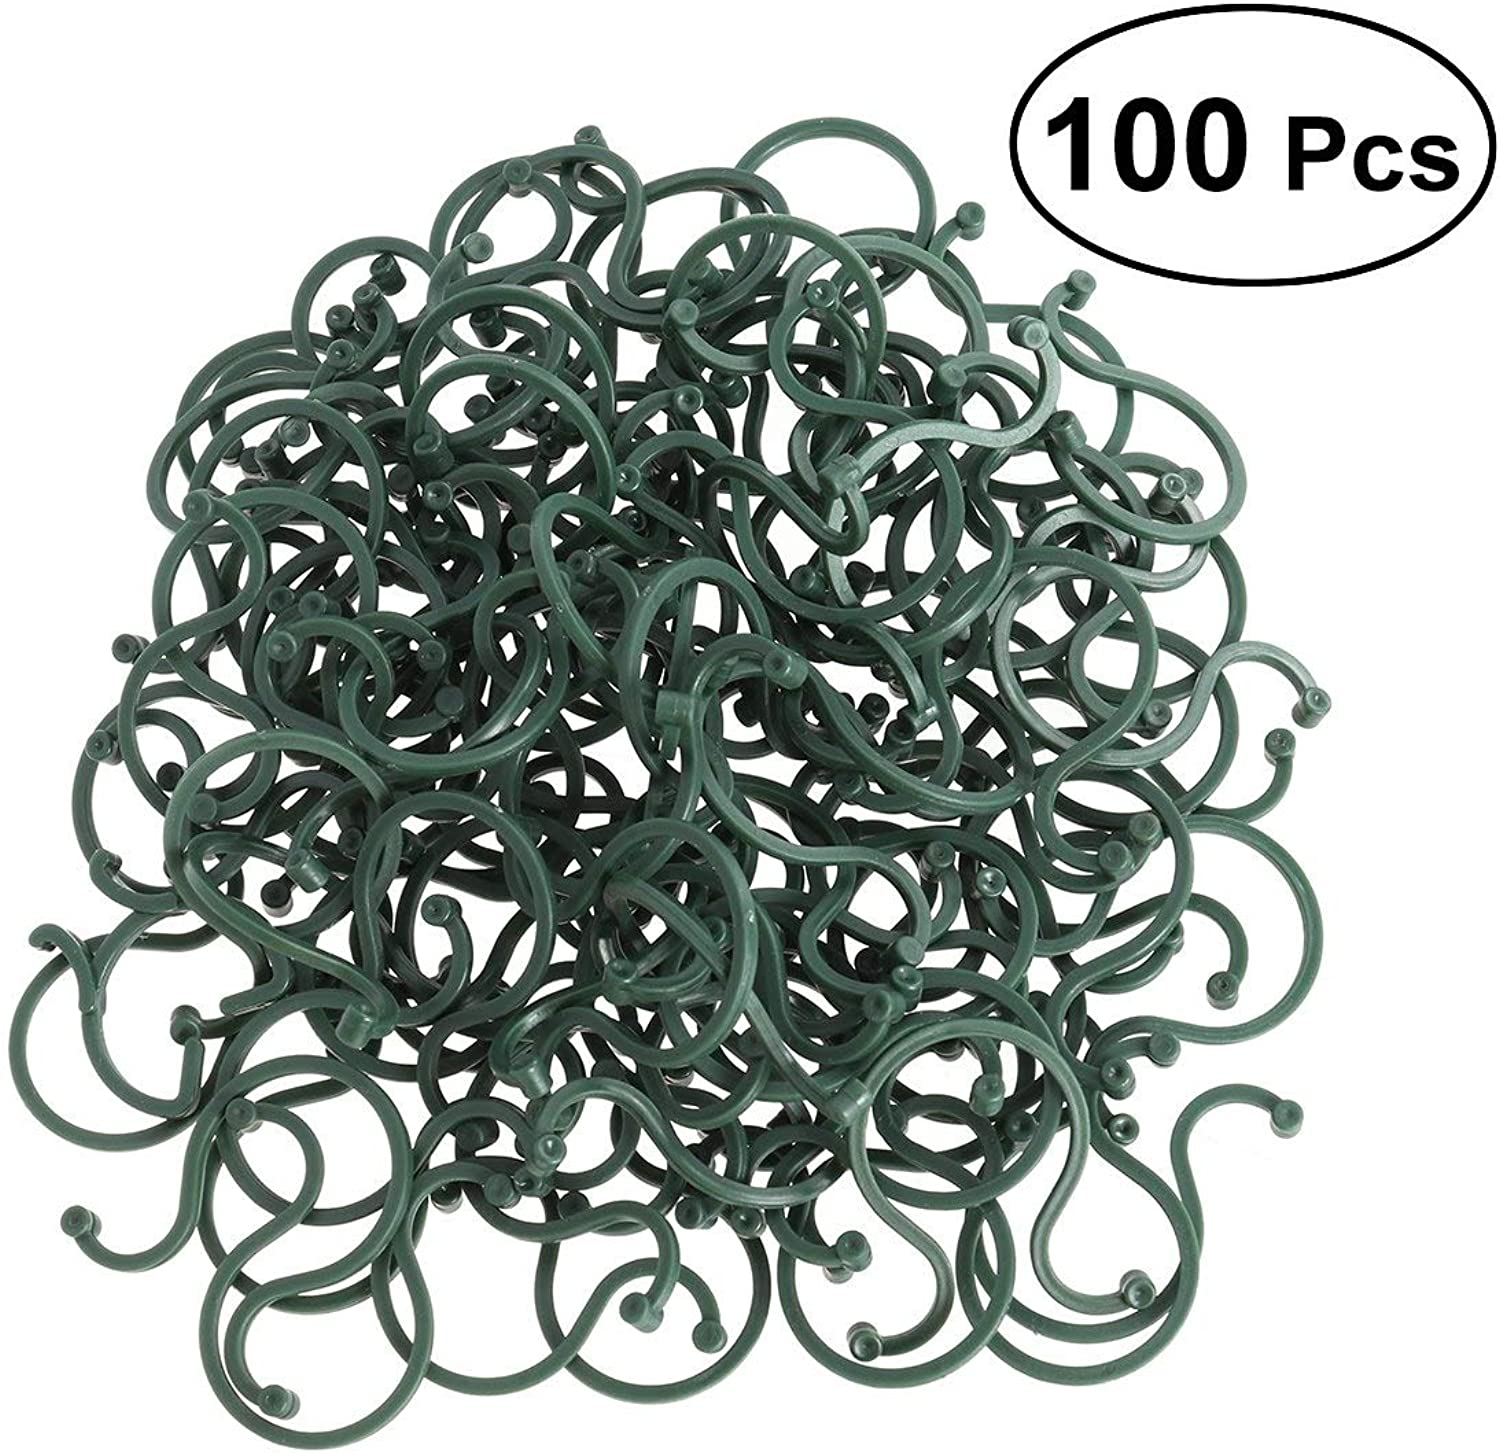 Shoppy Star New 100 Pcs Garden Plant Support Twist Clip for Vine Vegetables (Green)